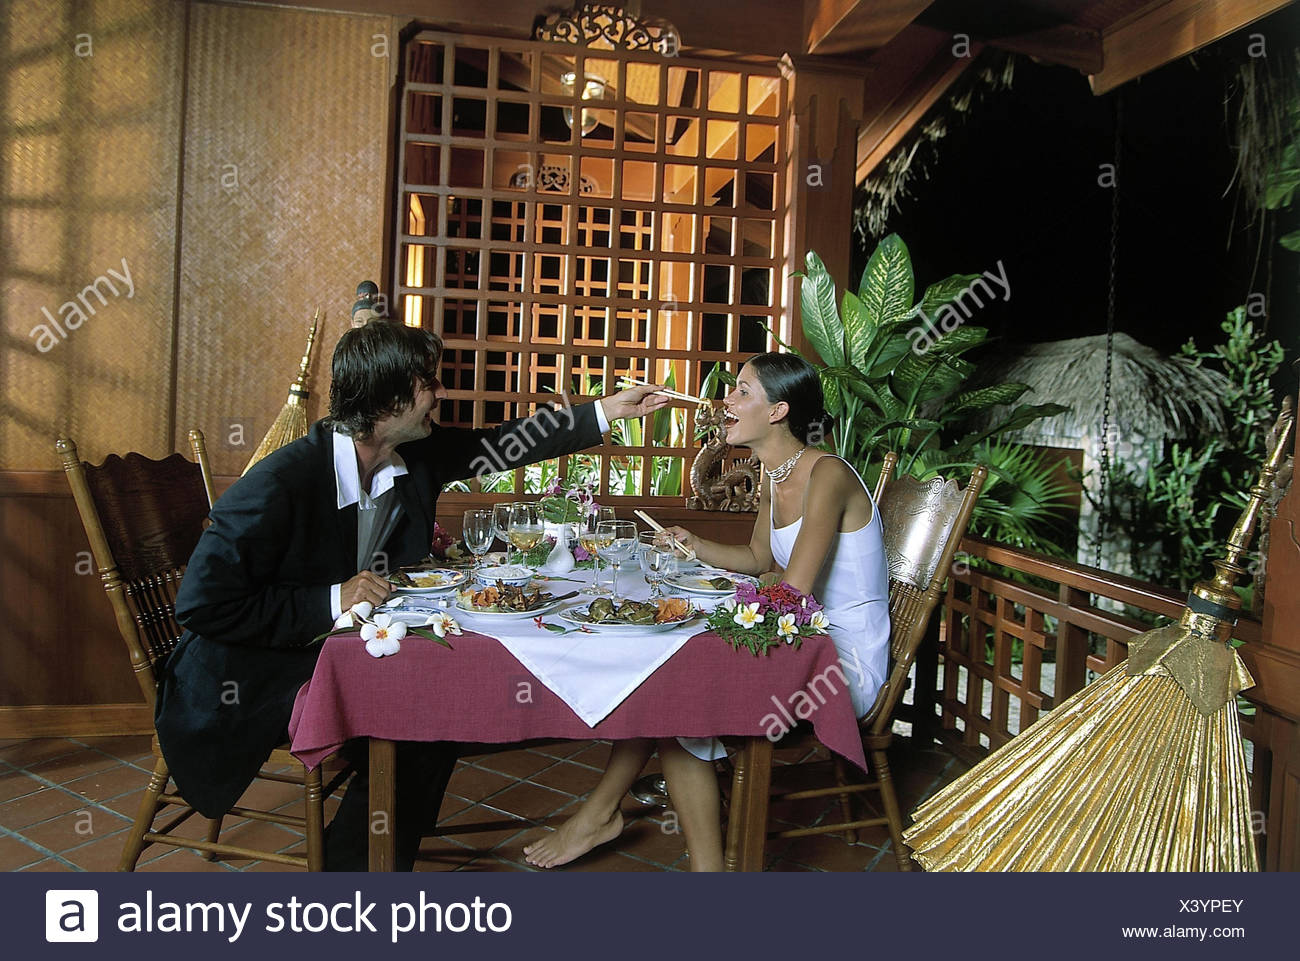 Restaurant Terrace Couple Elegantly Eat Asian Man Woman Feed Chopsticks Evening Bar Restaurant Chinese Restaurant In Chinese Restaurant Terrace Rod Table Jewellery Decoration Blossoms Fun Happily Dinner Stock Photo Alamy